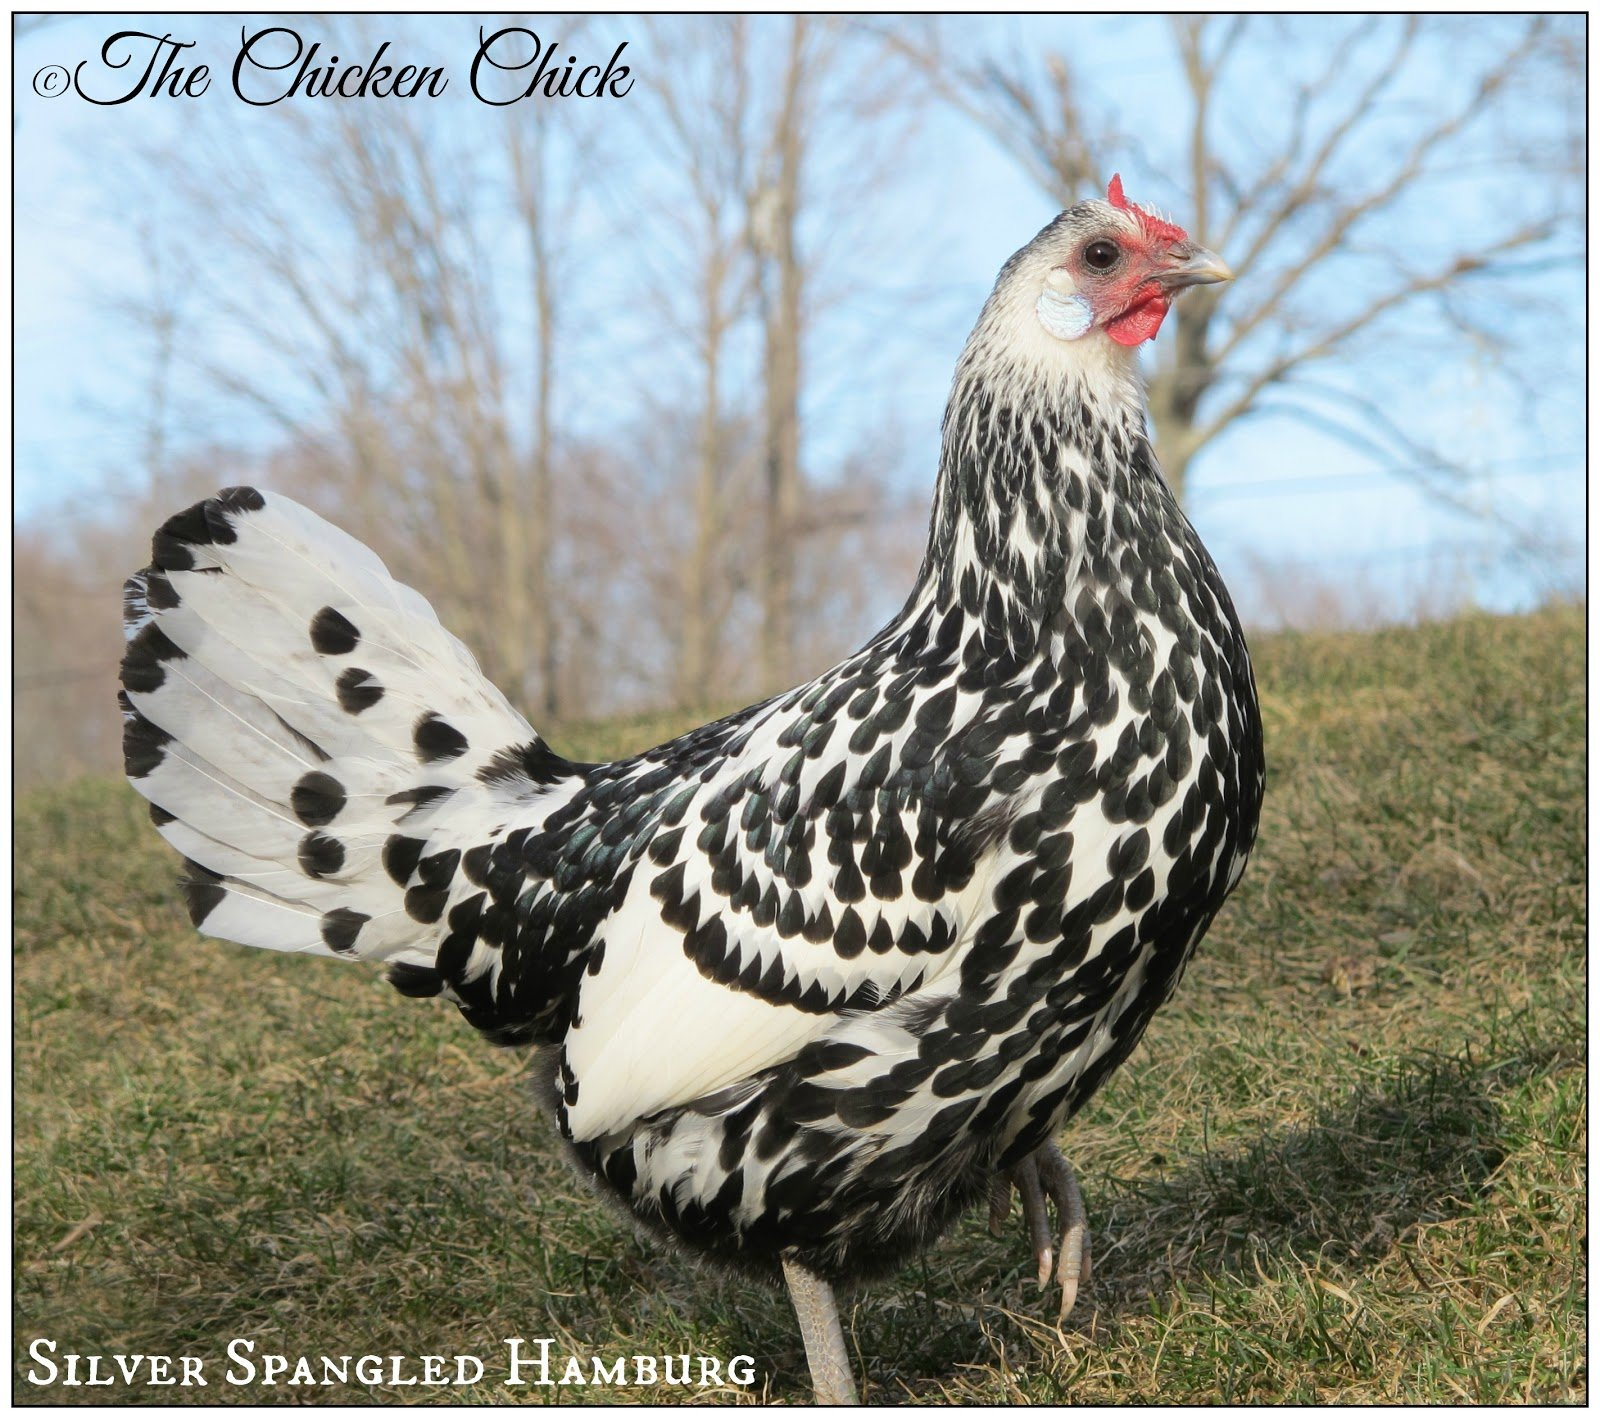 chicken-breeds-hamburg-with-the-chicken-chick-tips-for-selecting-breeds-58e48f865b953.jpg